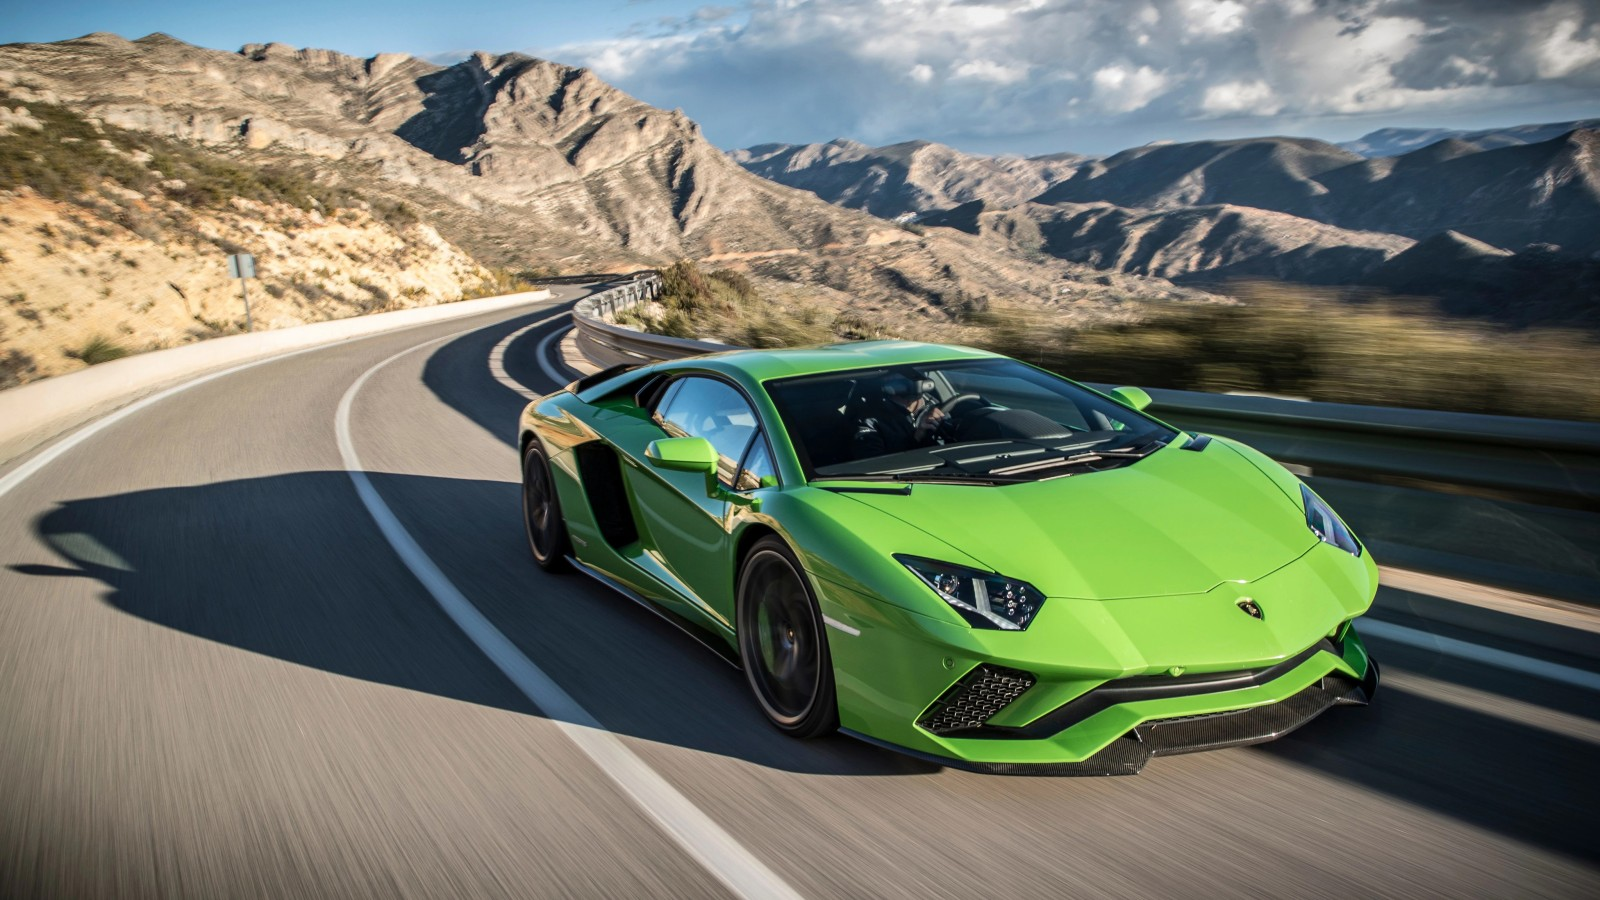 Lamborghini Aventador S 2017 4K Wallpaper  HD Car Wallpapers  ID 8342